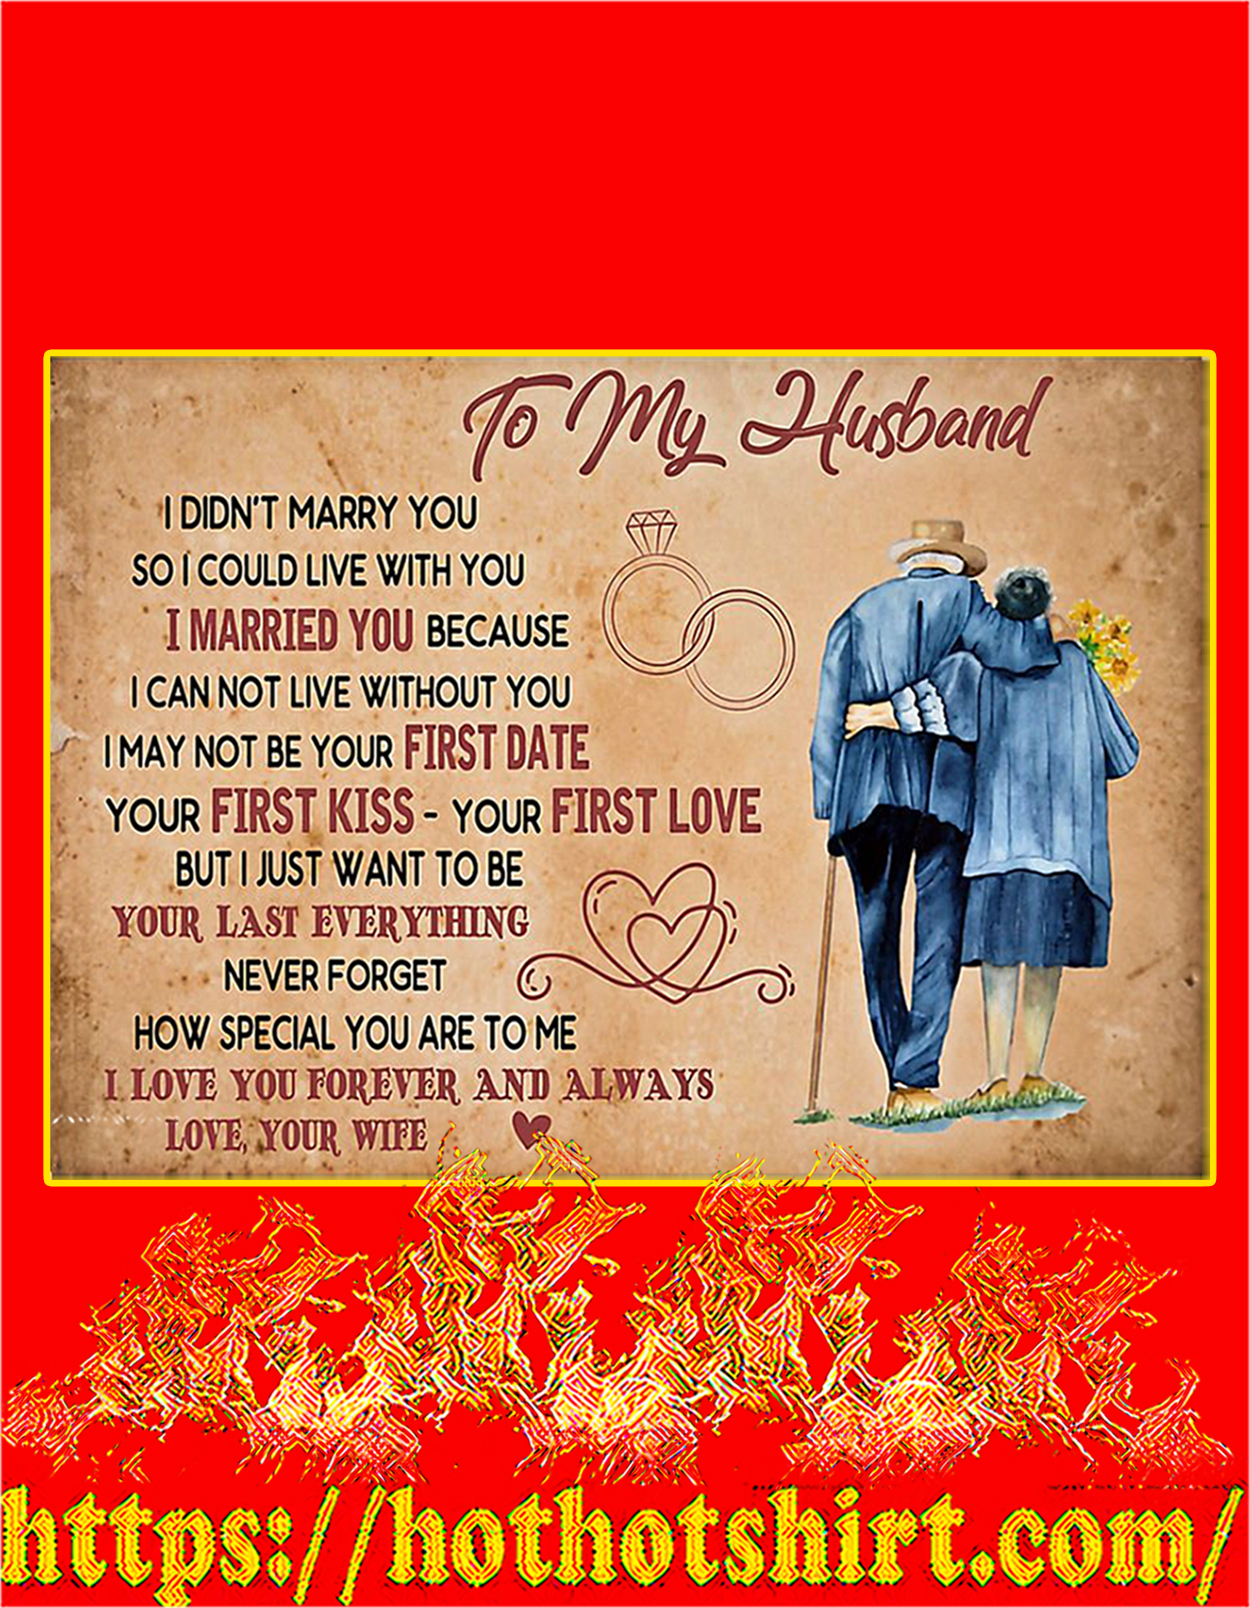 To my husband I didn't marry you poster - A3